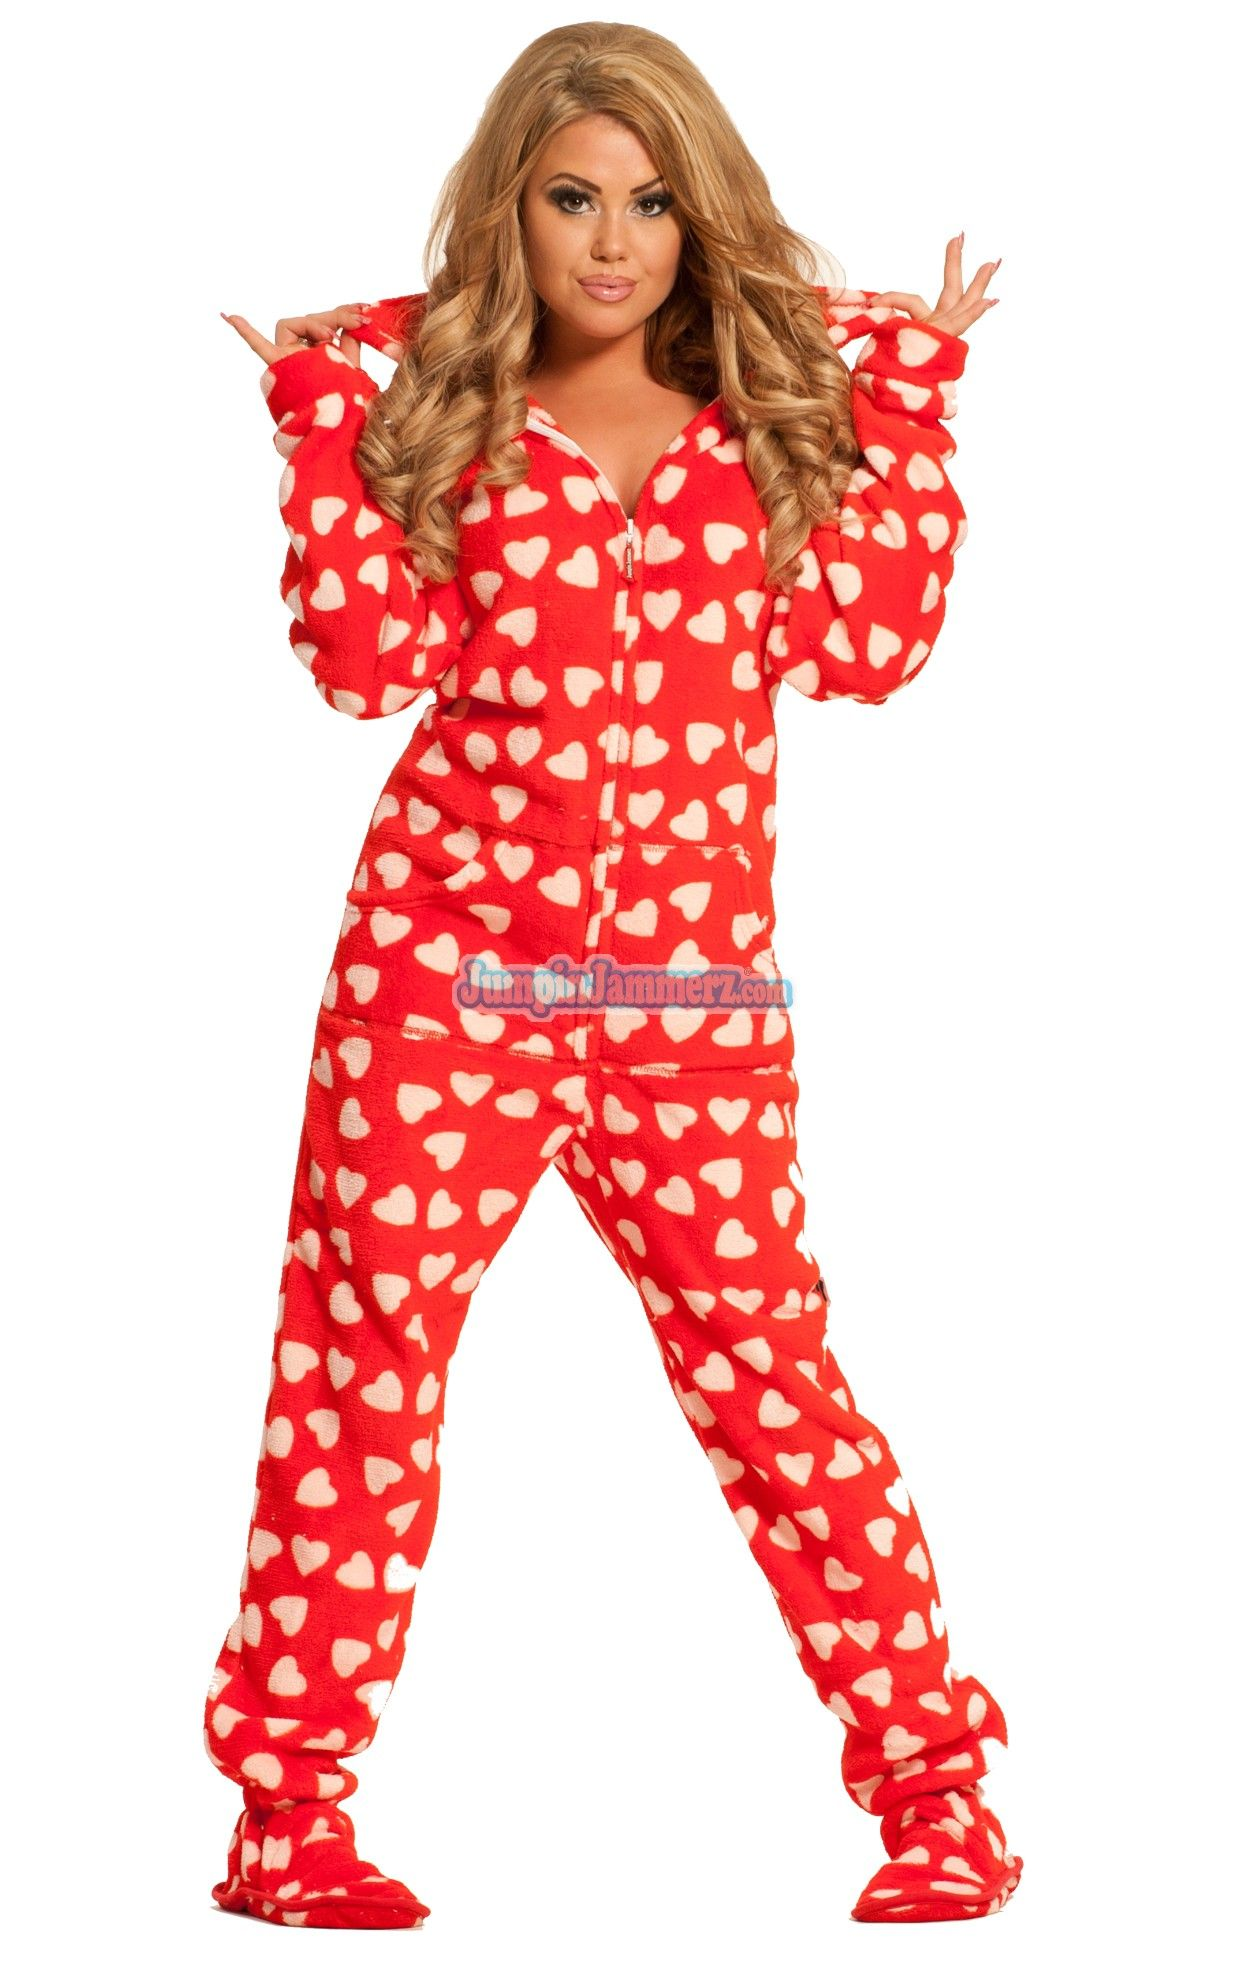 6b97ee9916bb Purchase Red Heart Breaker Hooded Adult Pajamas Online